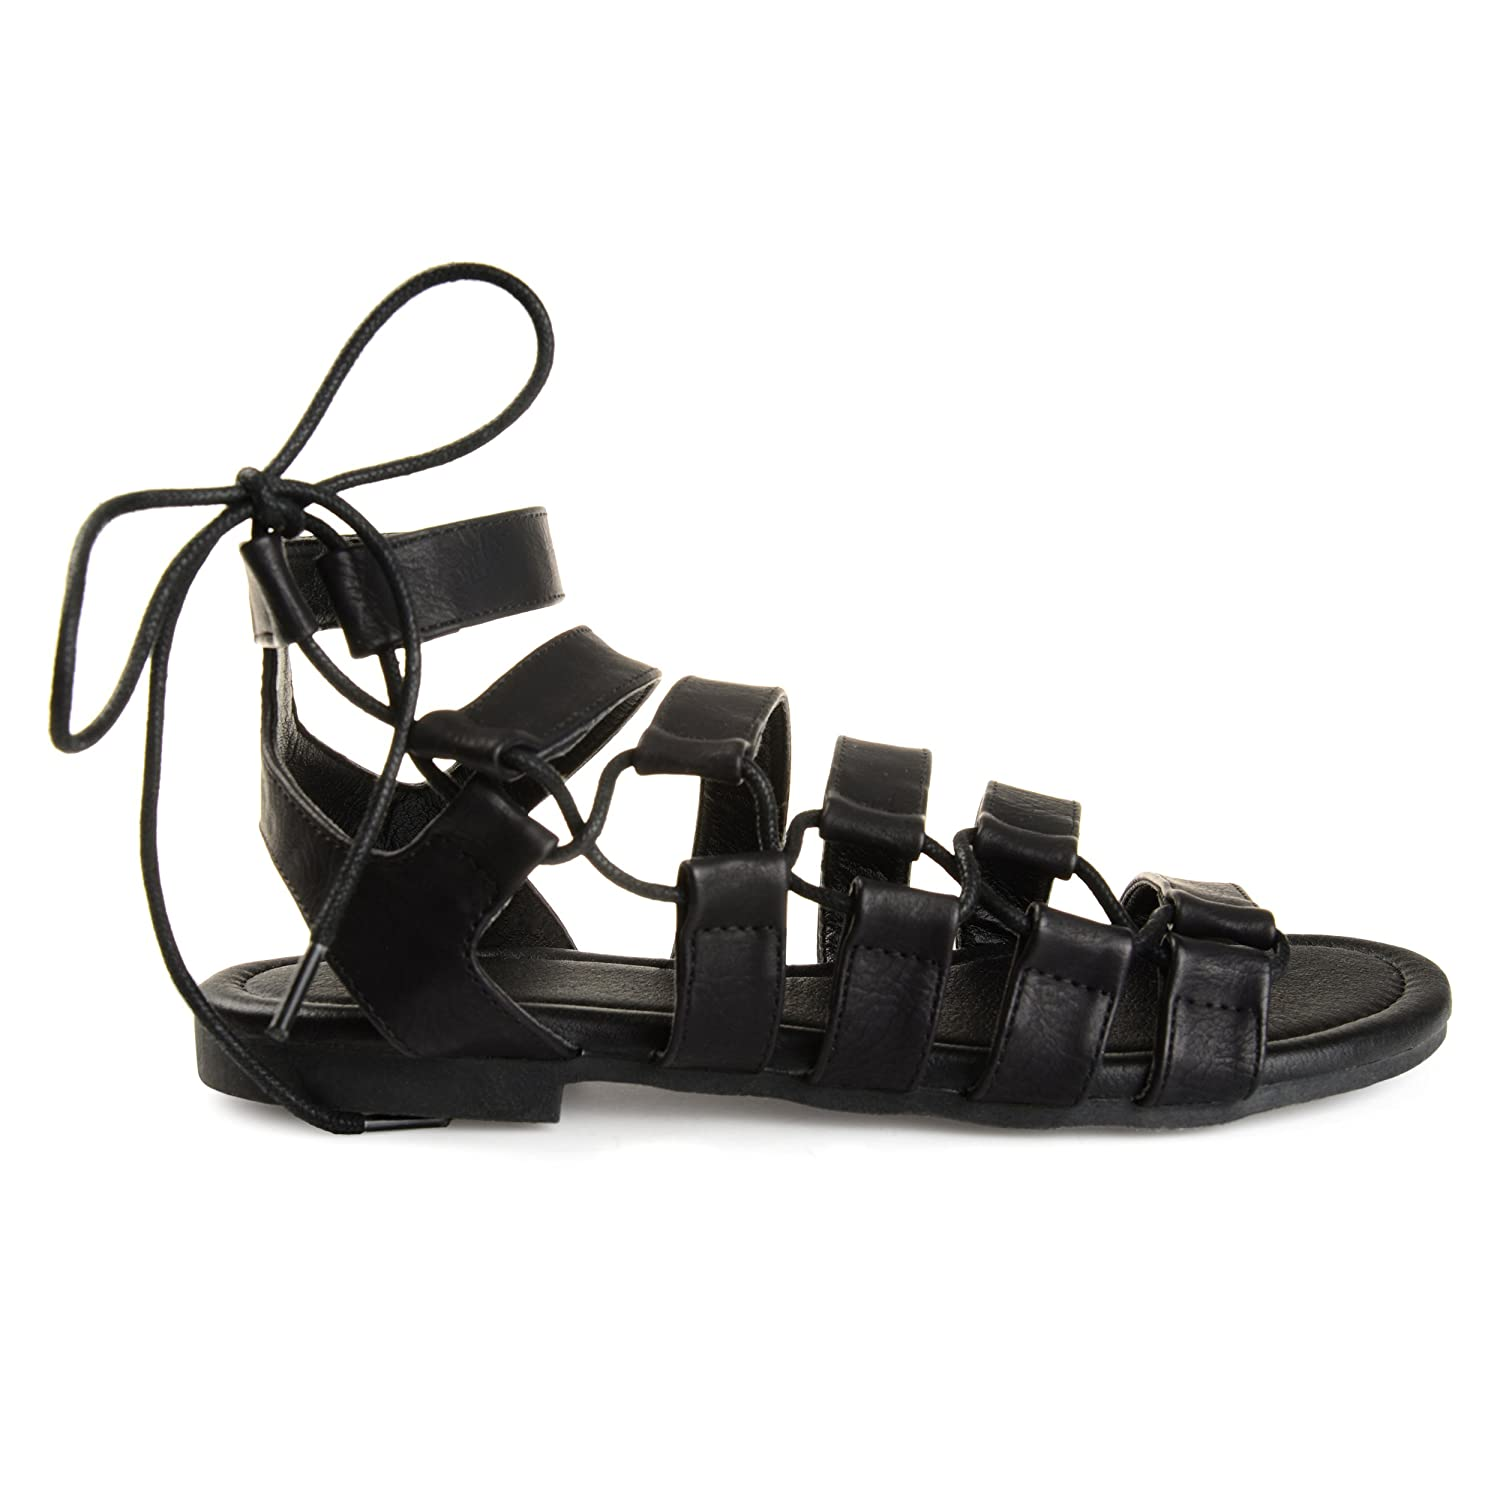 28912992a5fb Womens Clove Caged Faux Leather Strappy Gladiator Sandals